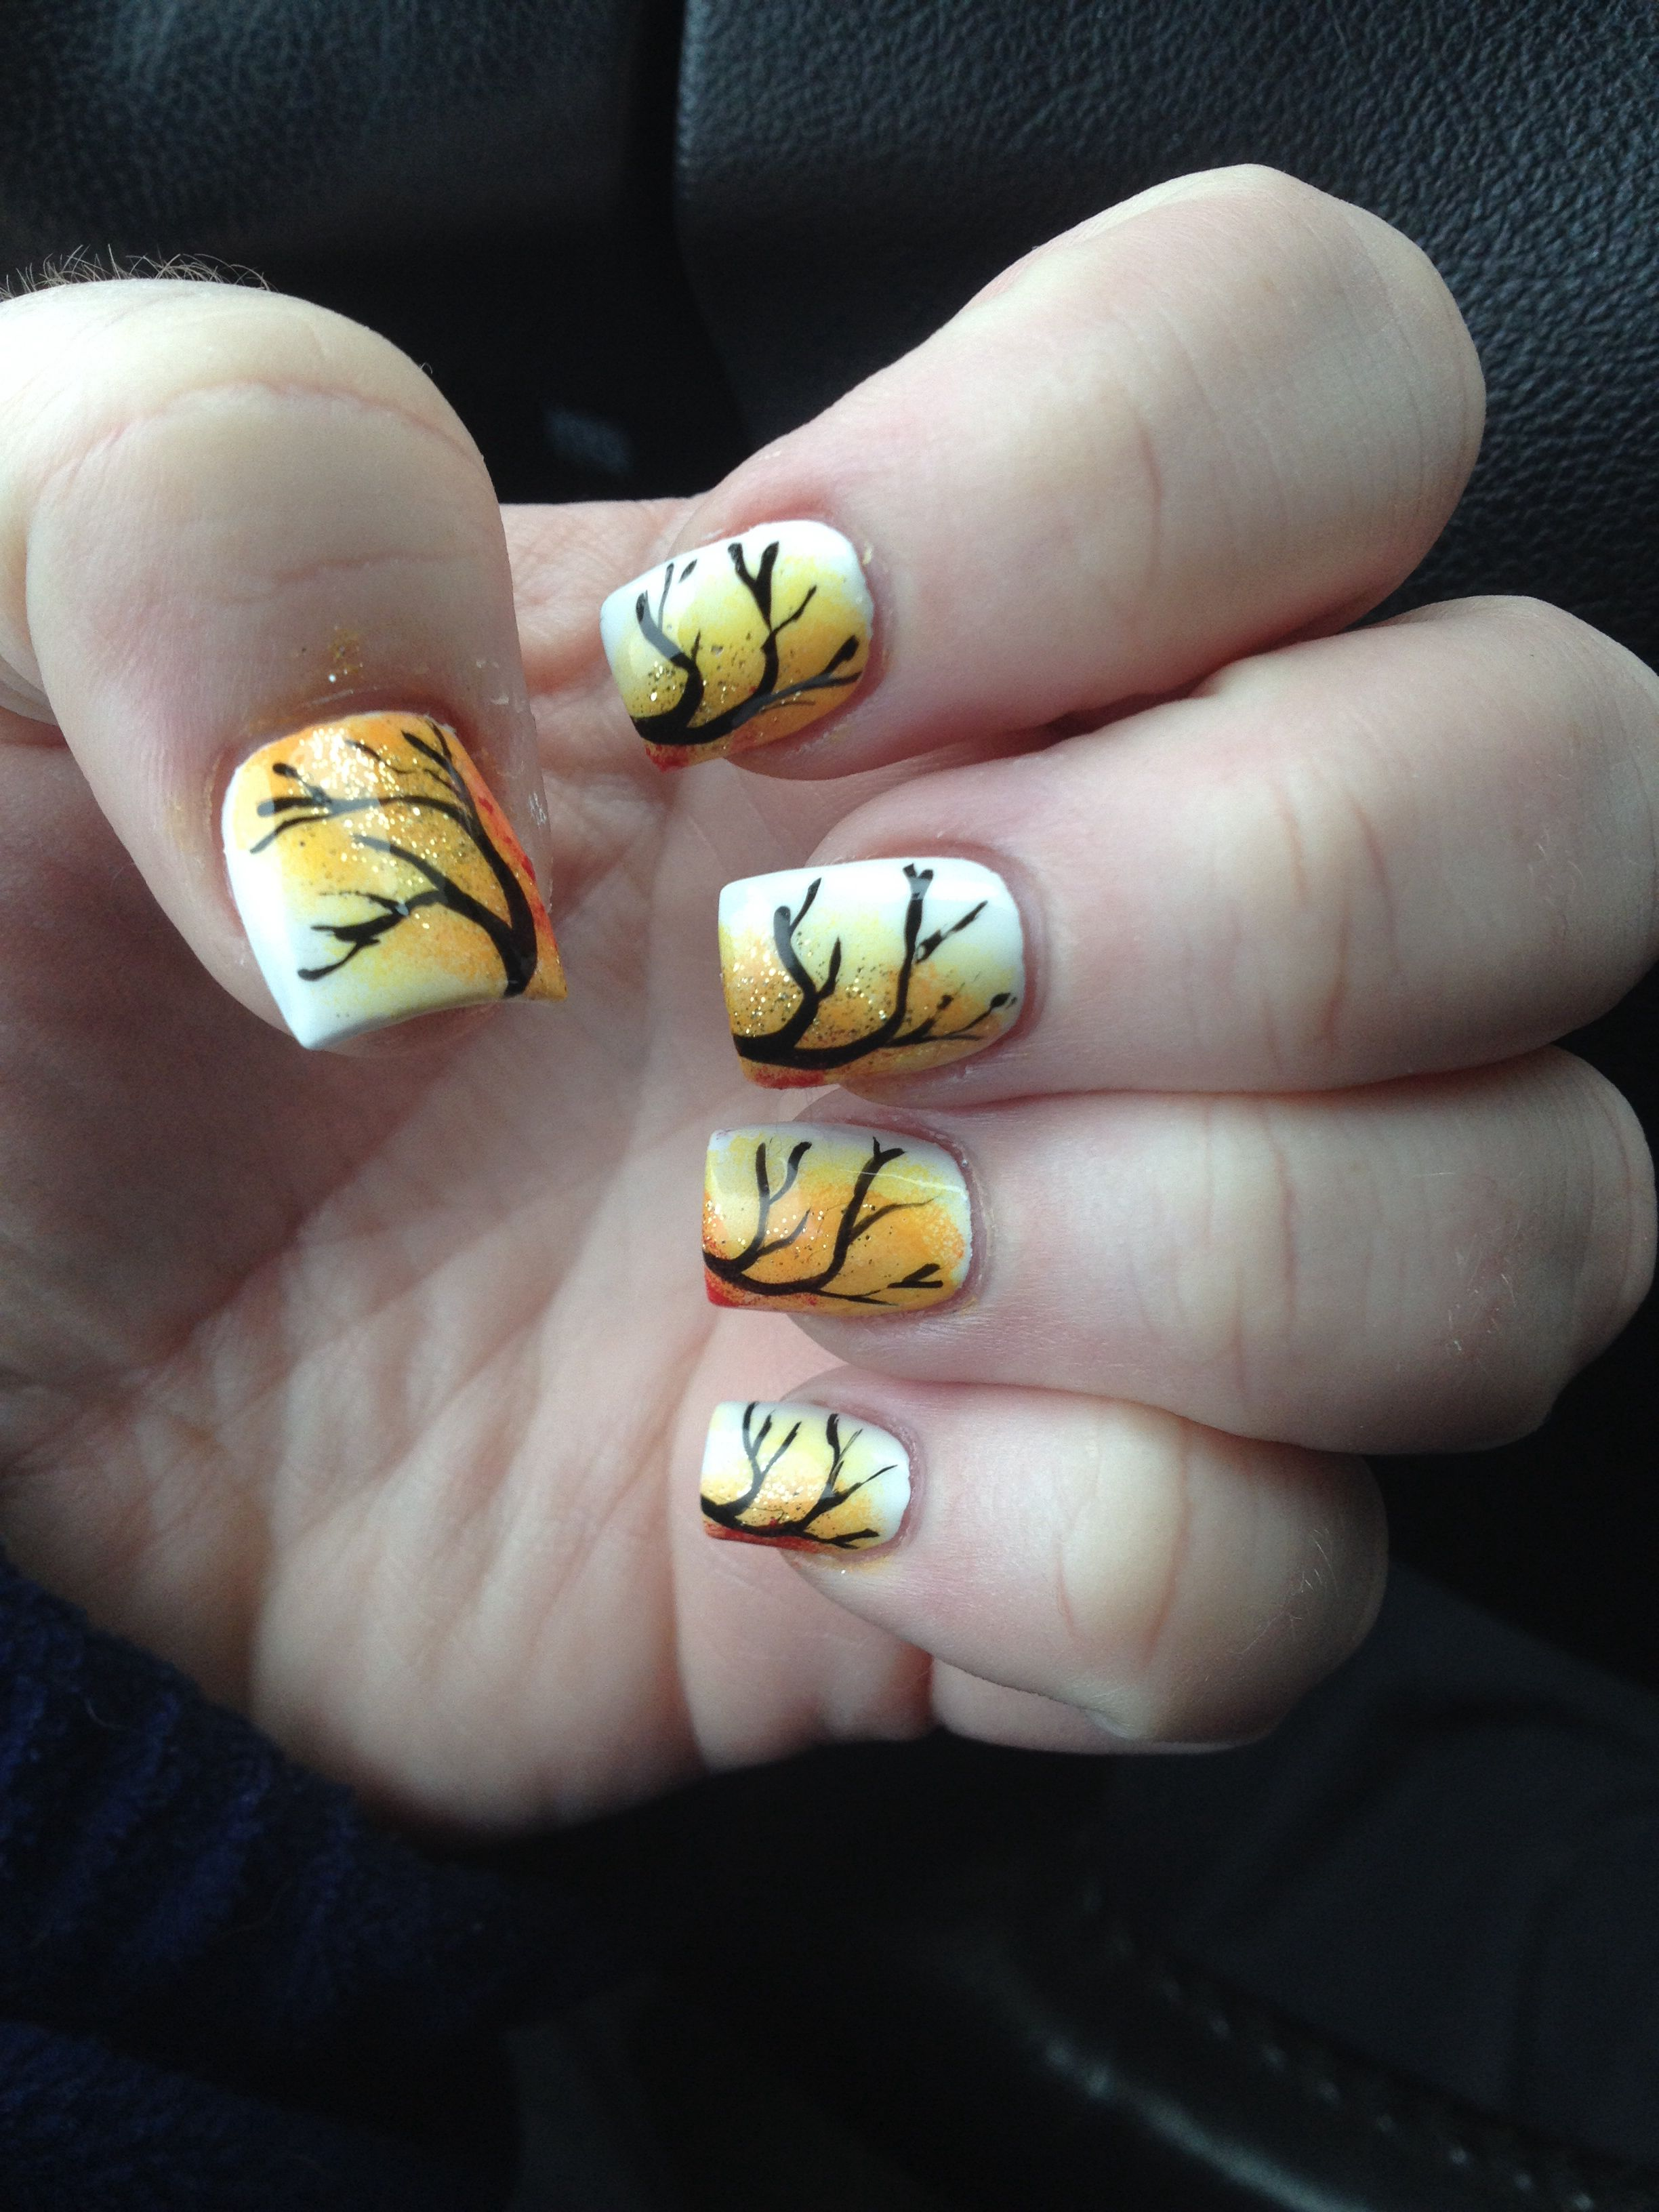 My first fall nails!